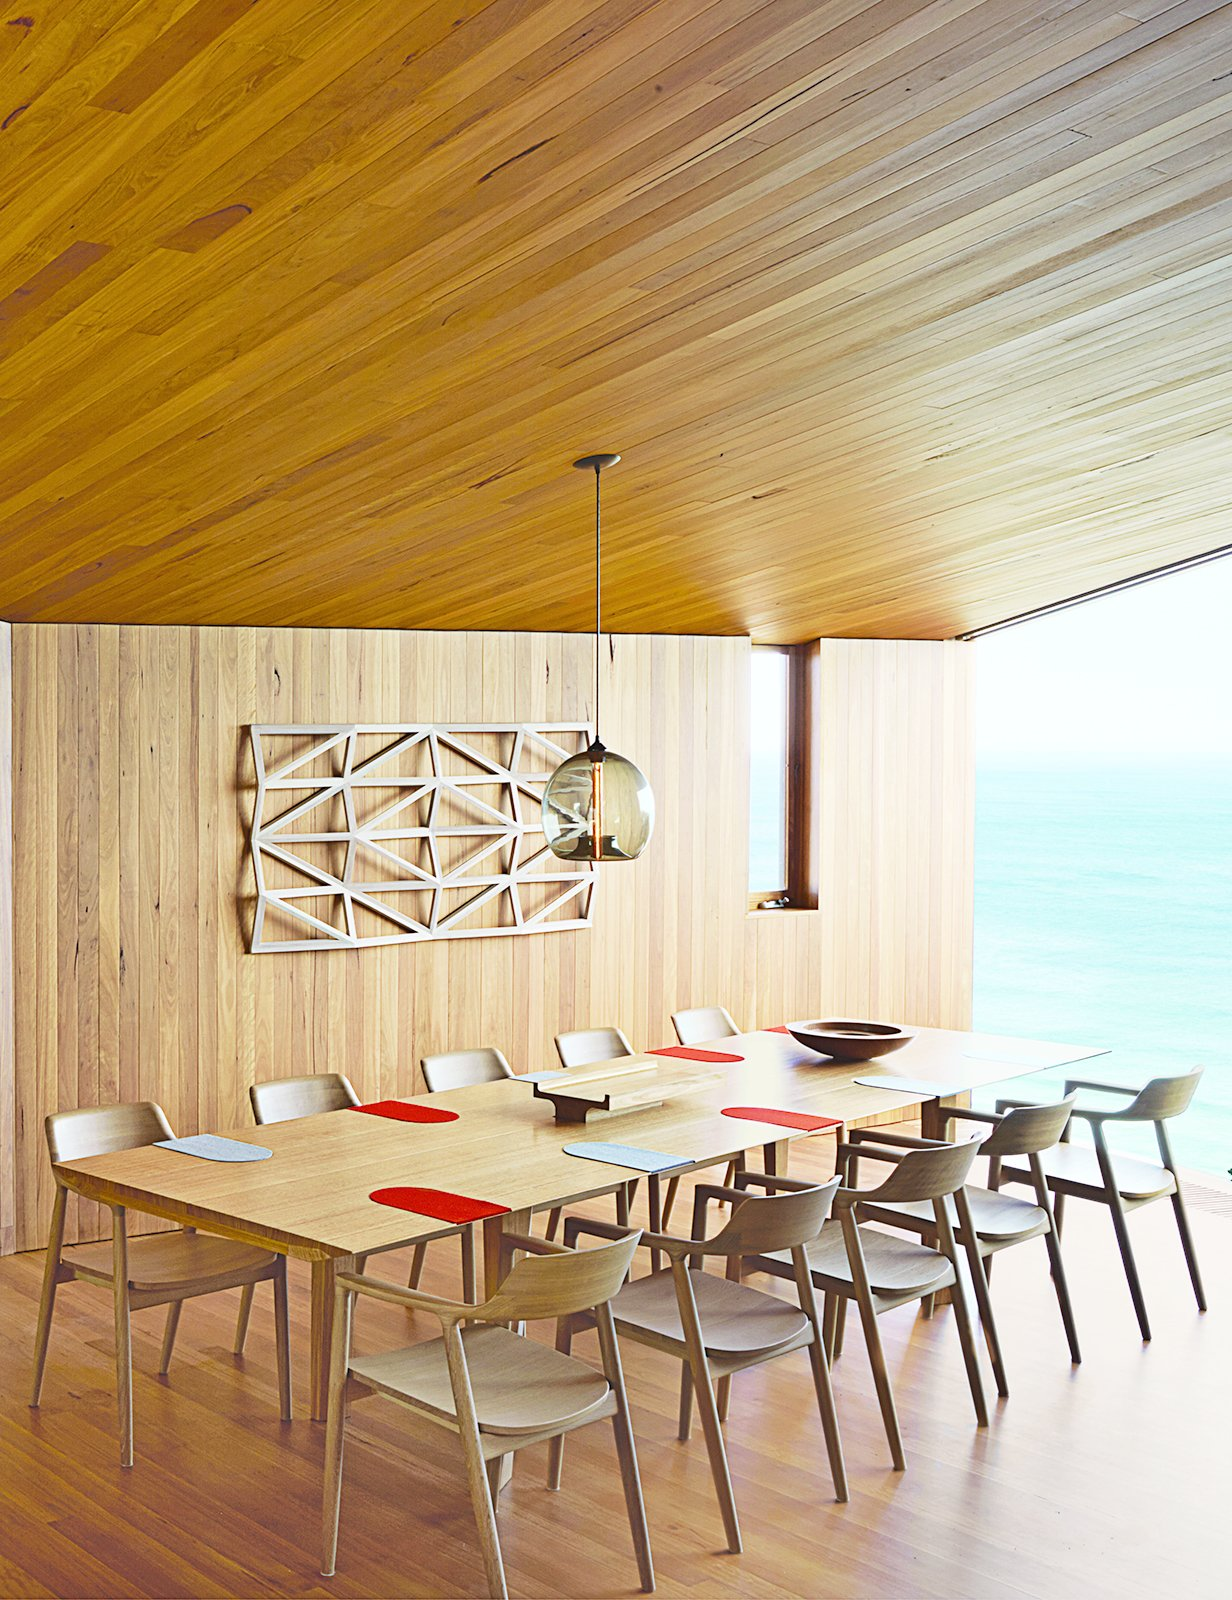 Wardle's firm also designed the dining table, where up to ten guests can gaze out at the Southern Ocean. The solid-oak Hiroshima chairs are designed by Maruni.  Photo 7 of 10 in This Surfer Rules the Ocean from a Cliffside House